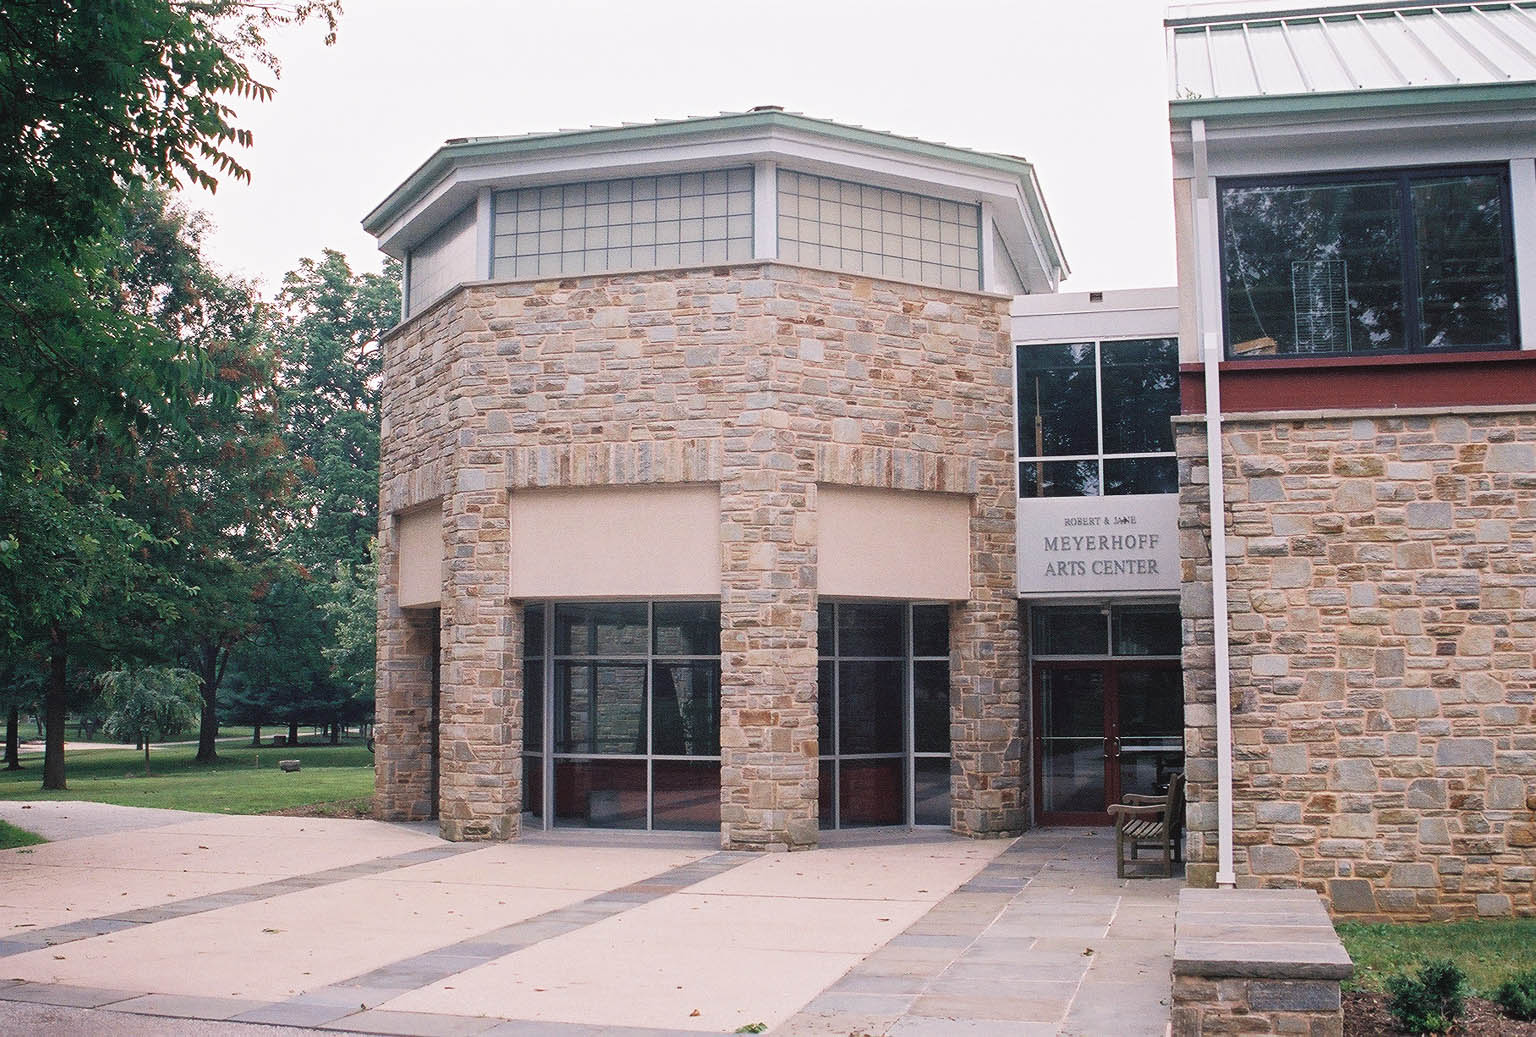 Goucher College Meyerhoff Arts Center